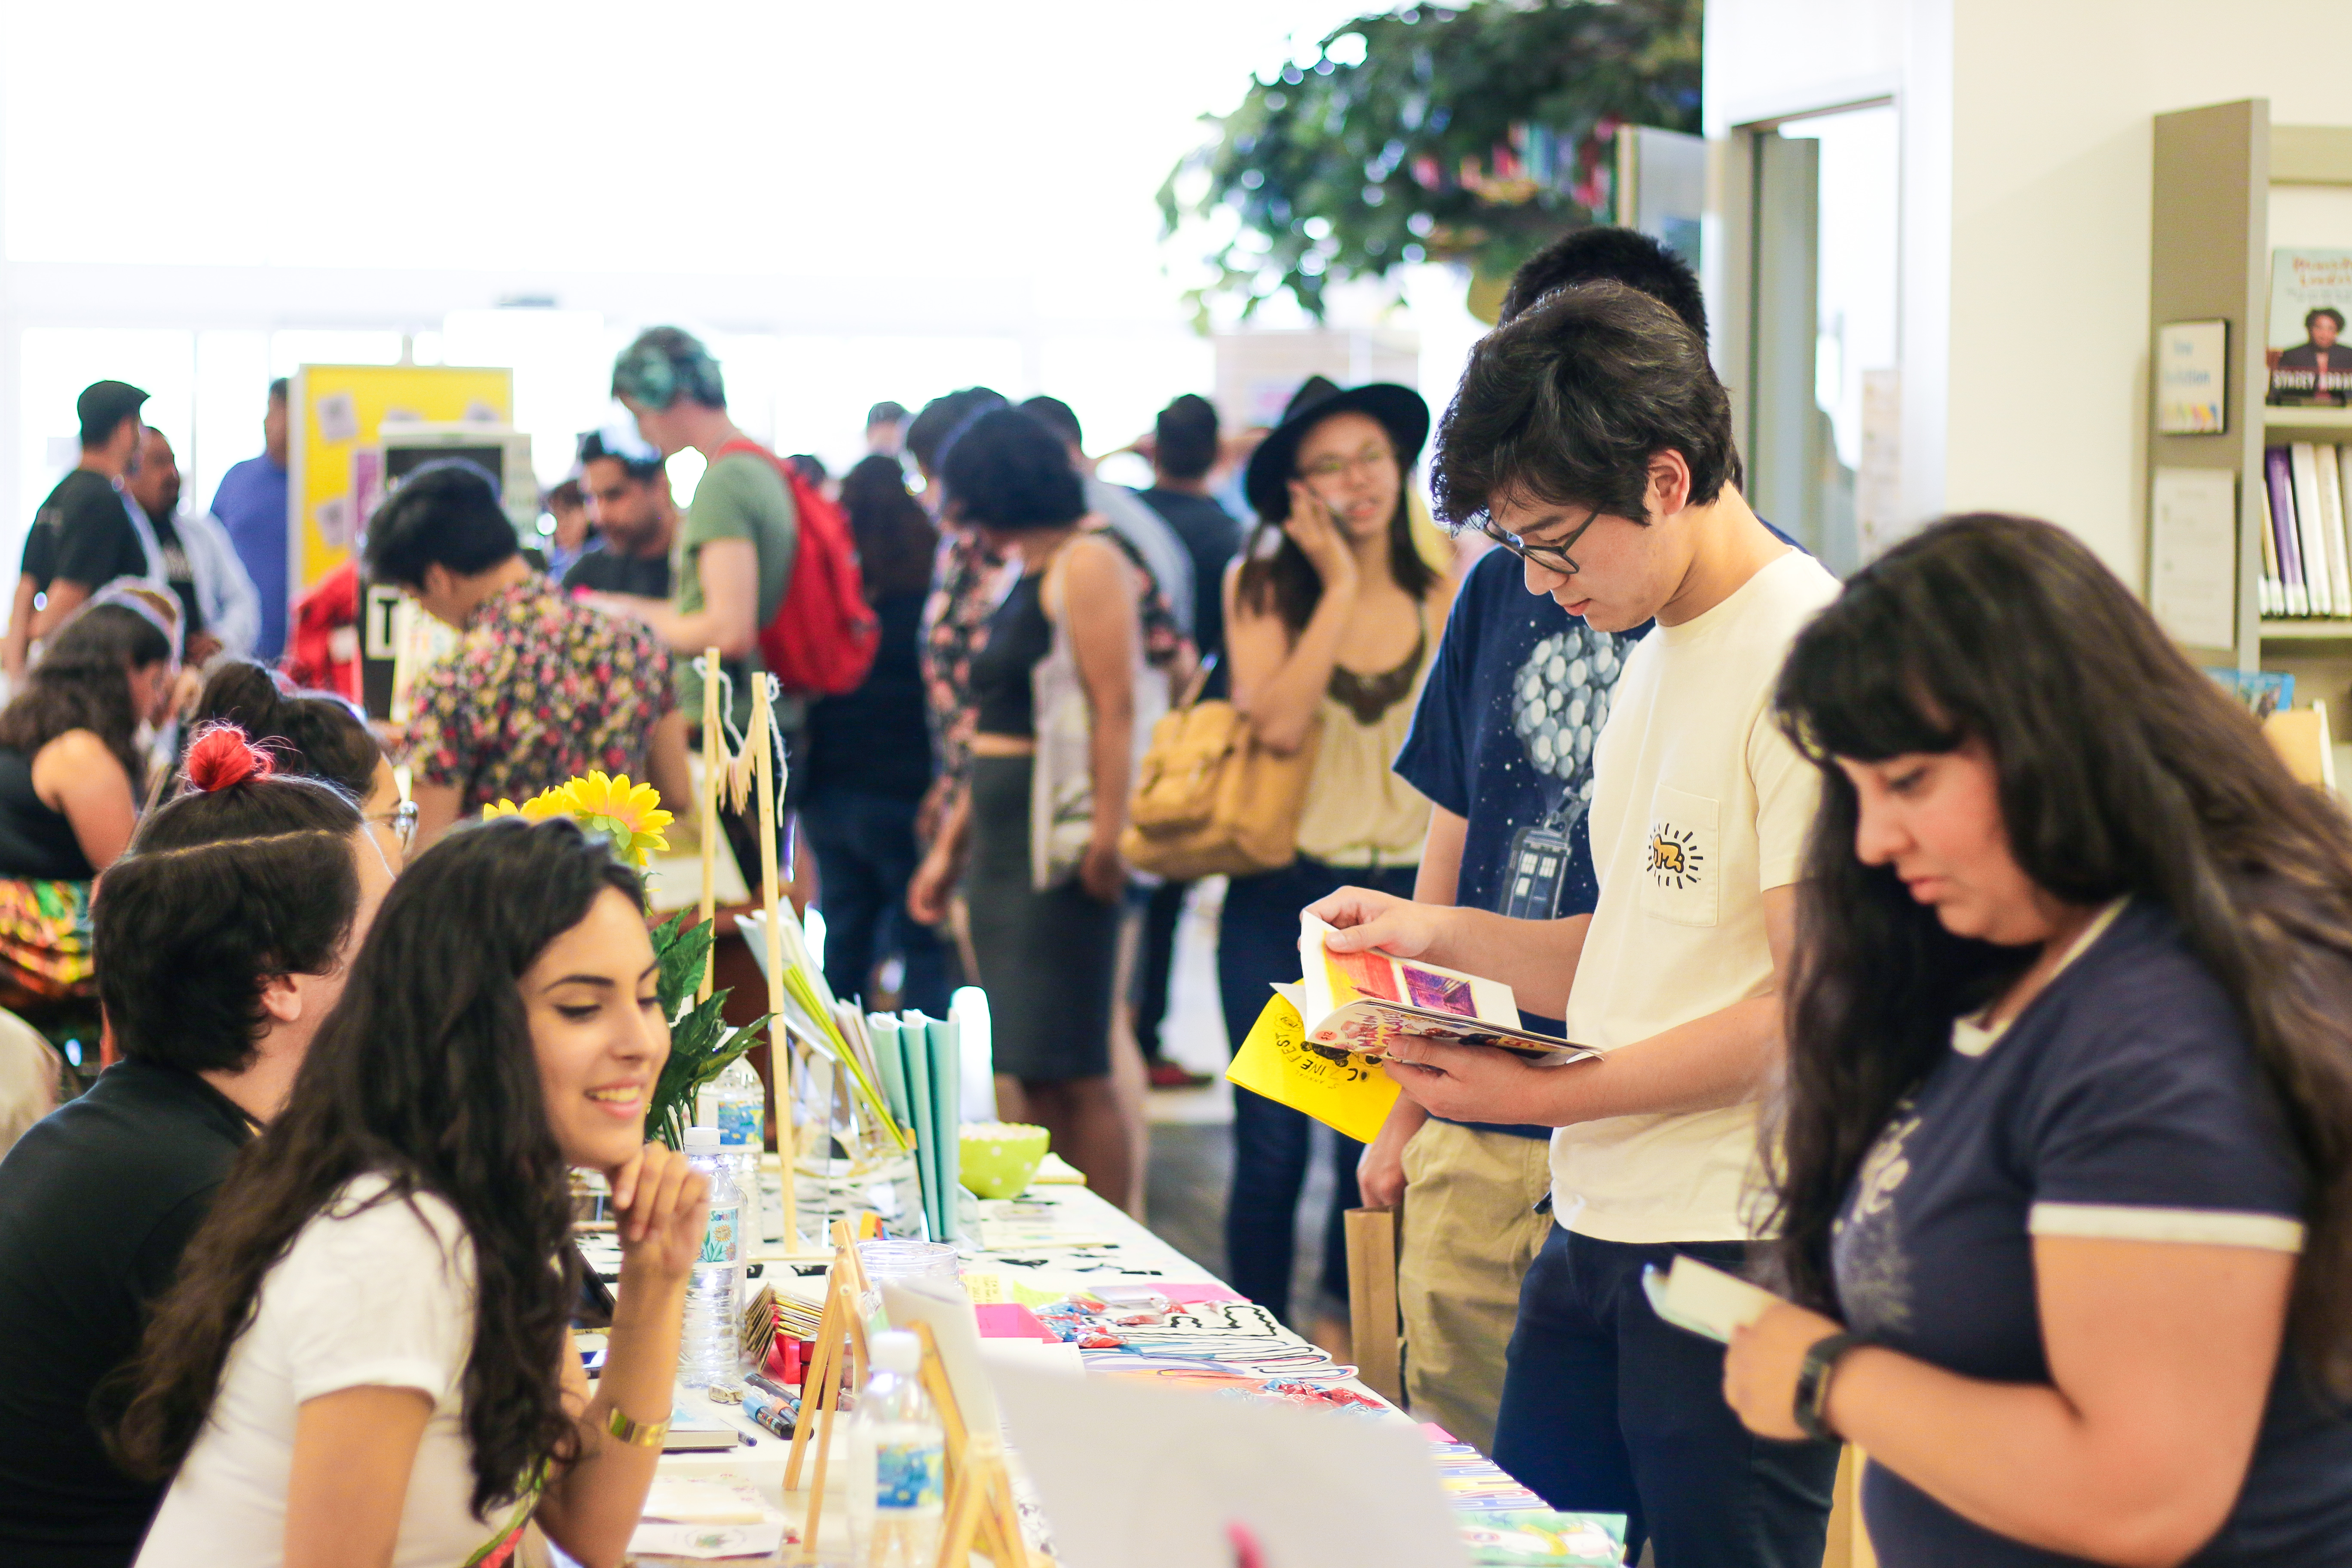 OC Zine Fest vendors at Central Library